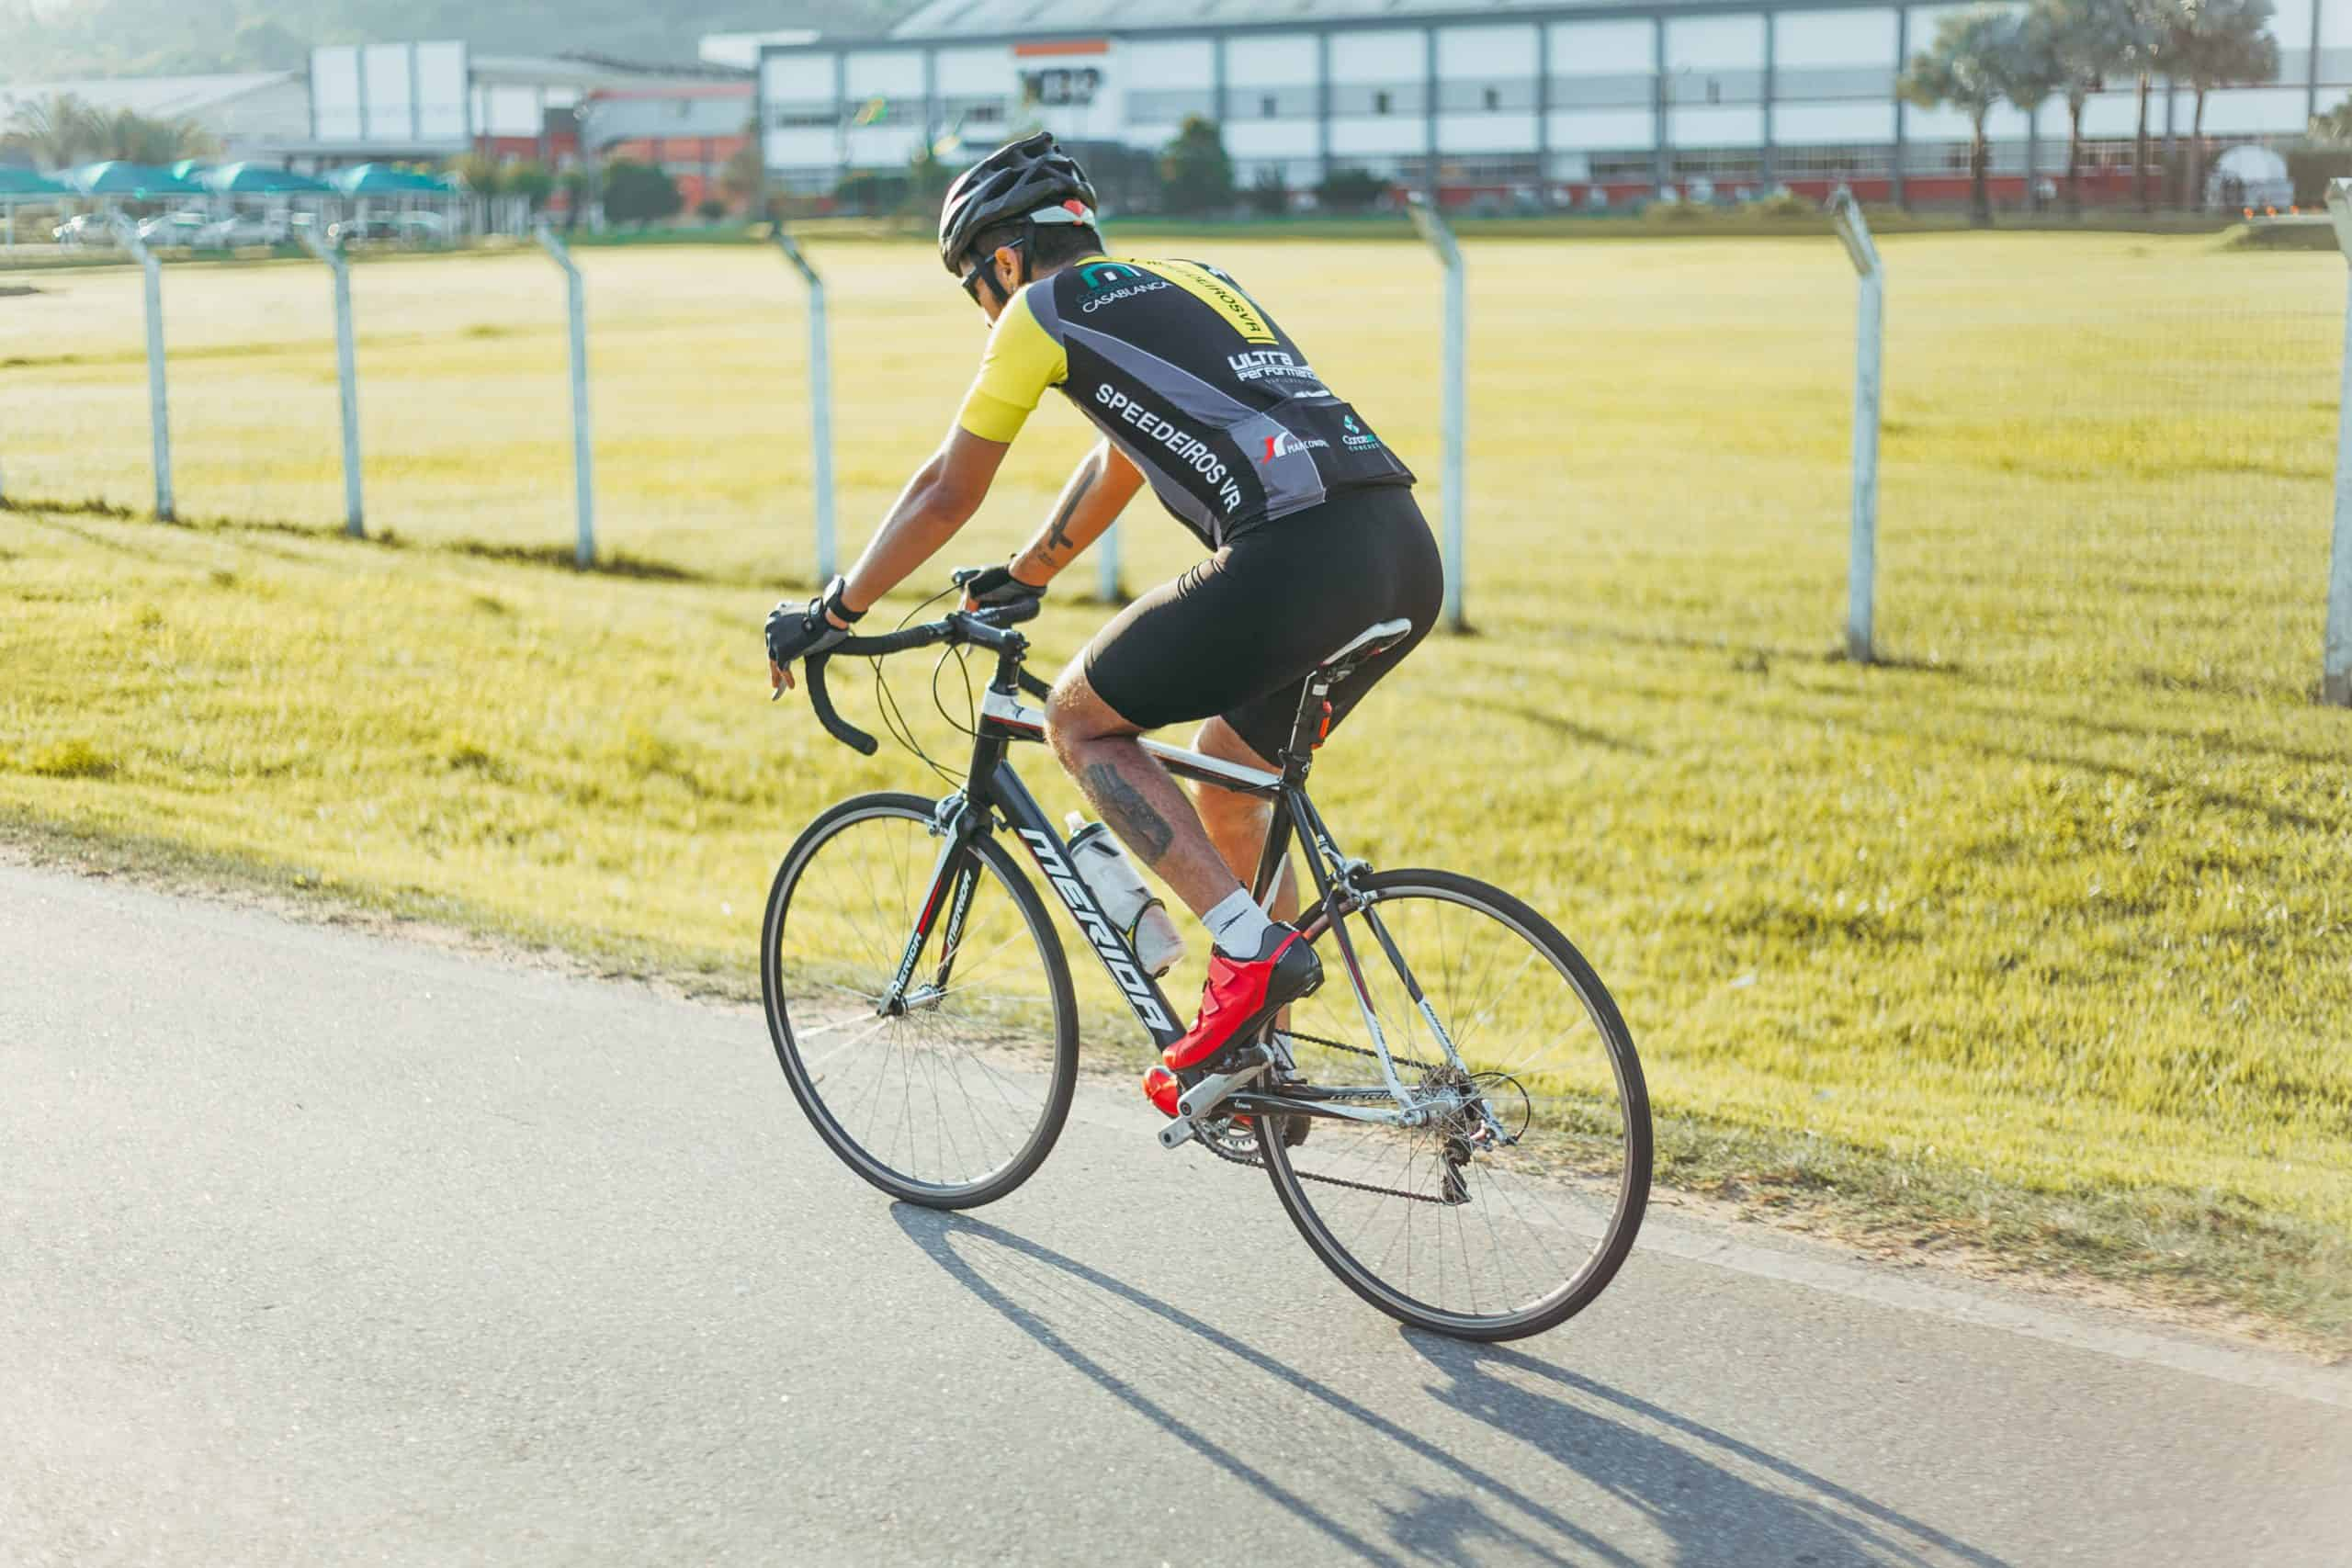 How To Choose a Bike Seat For Comfort?